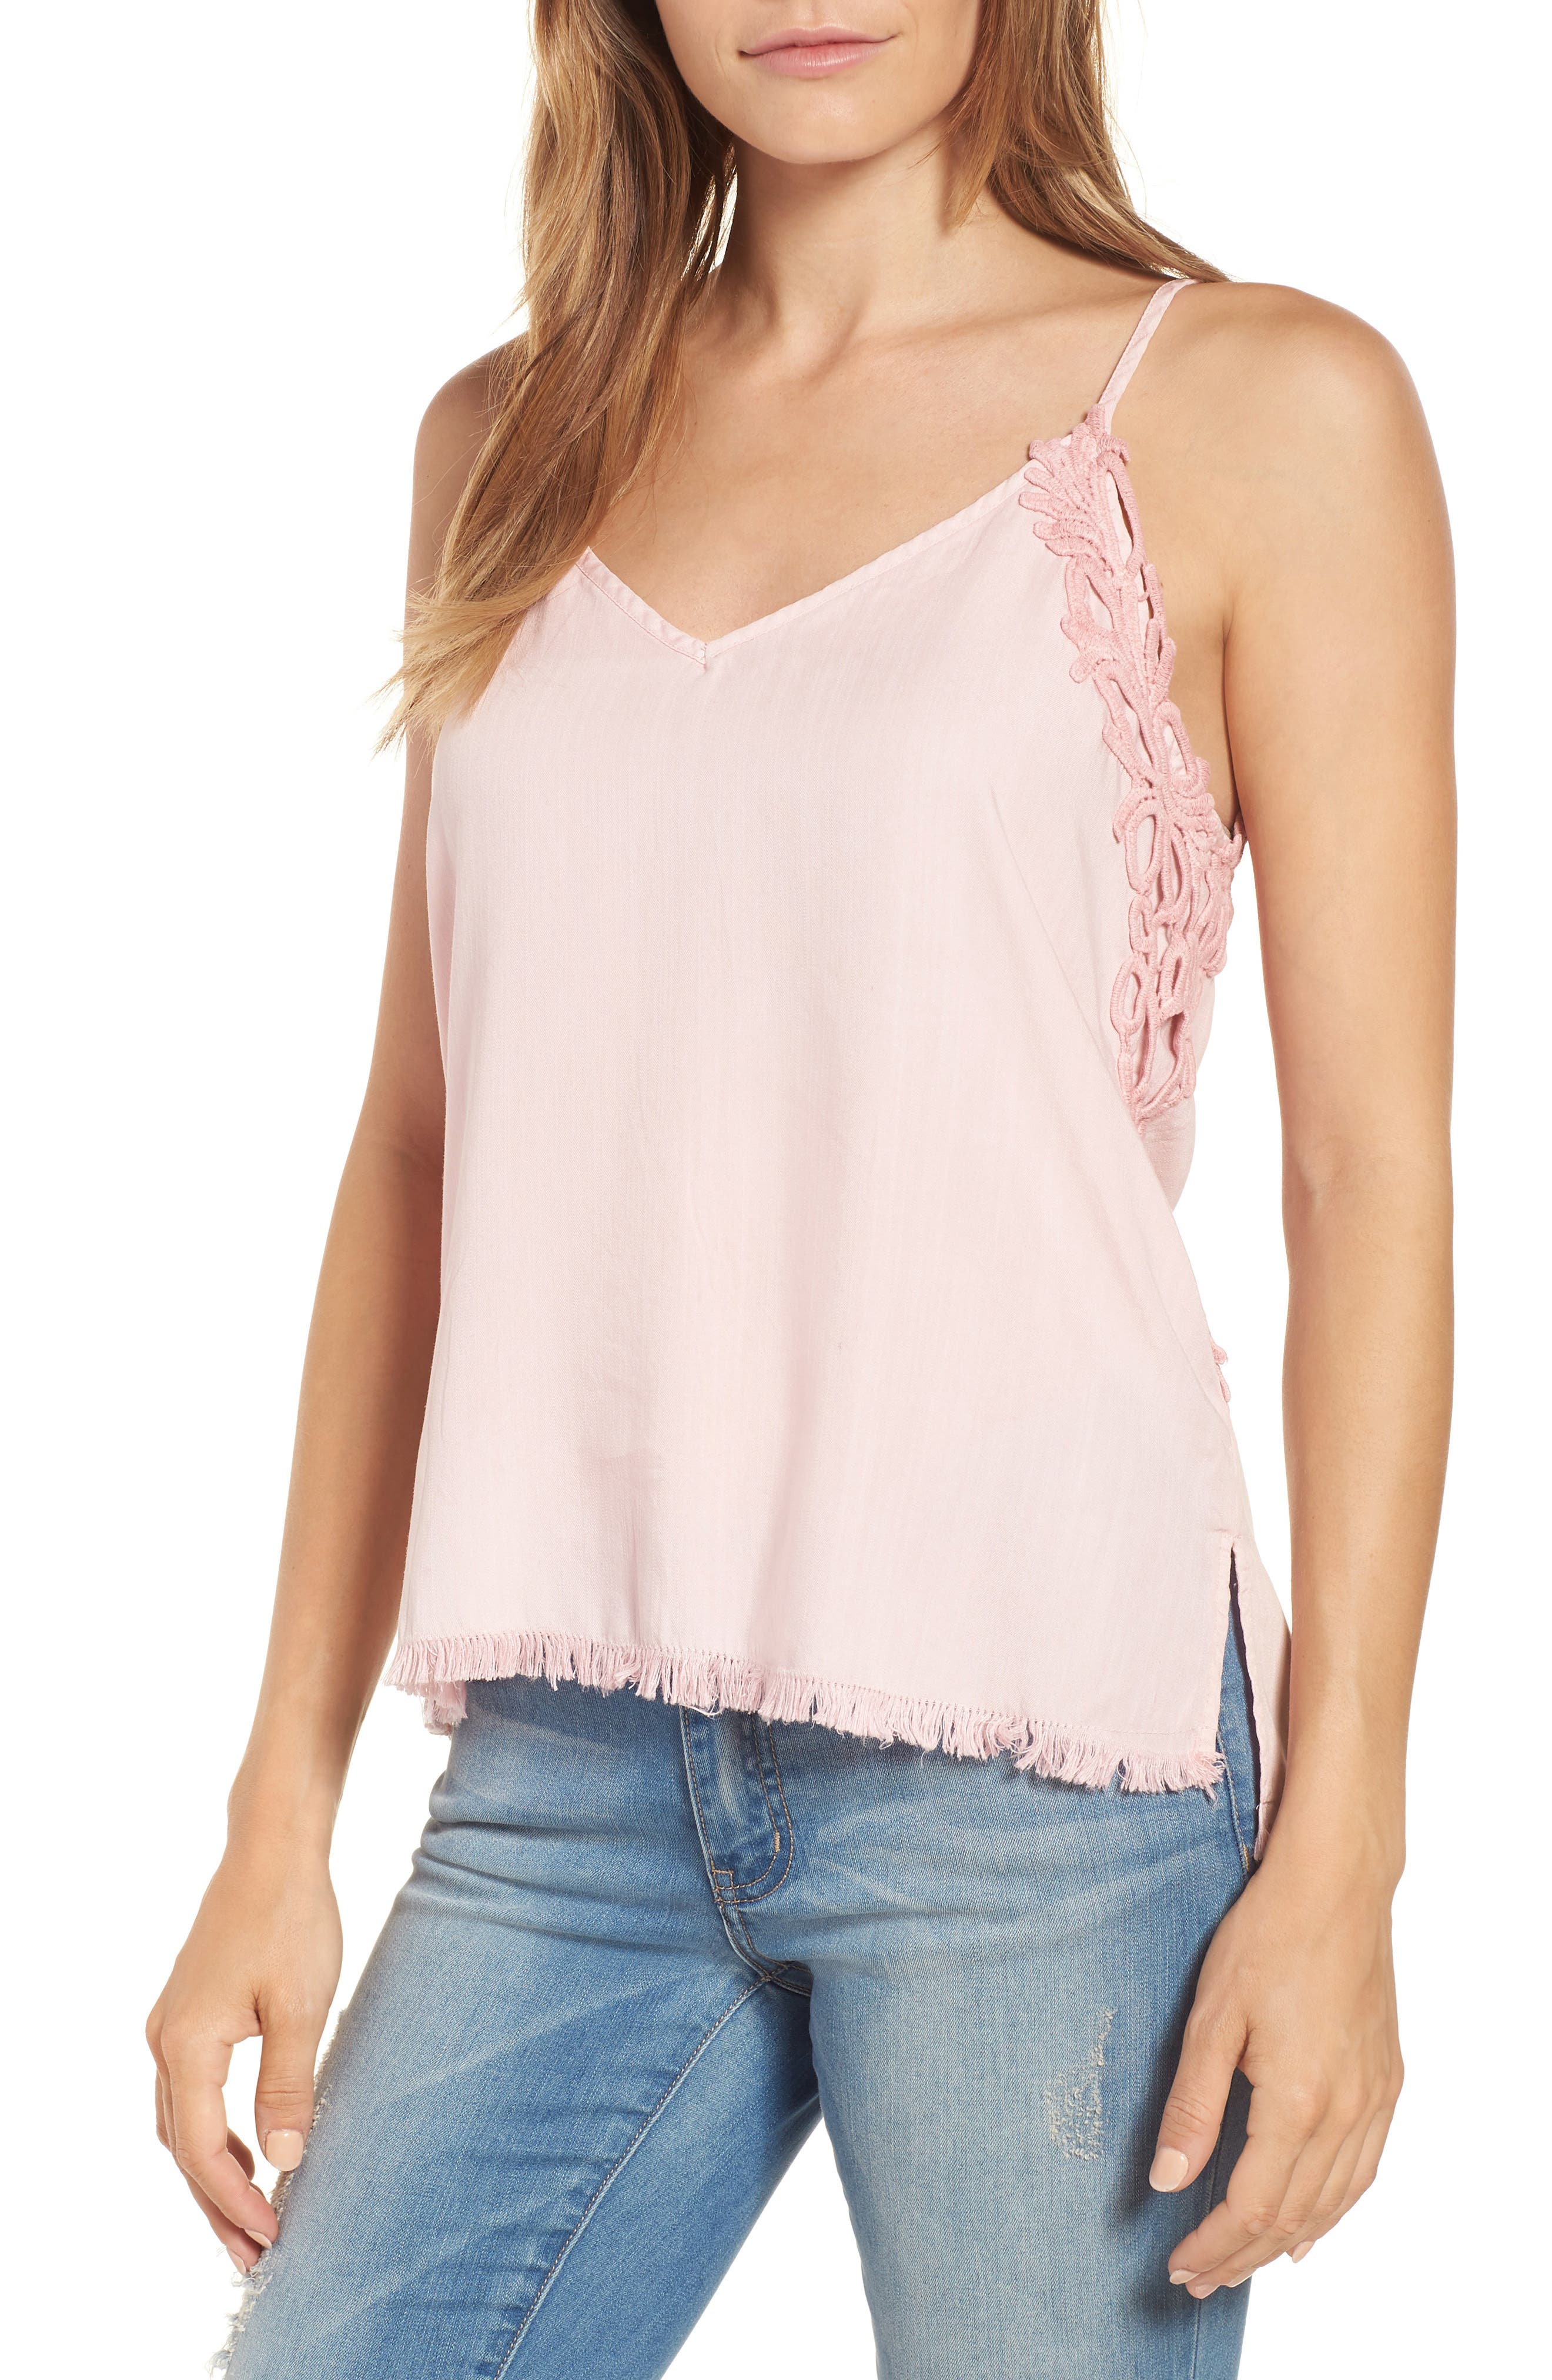 Billy T Chambray Camisole Top